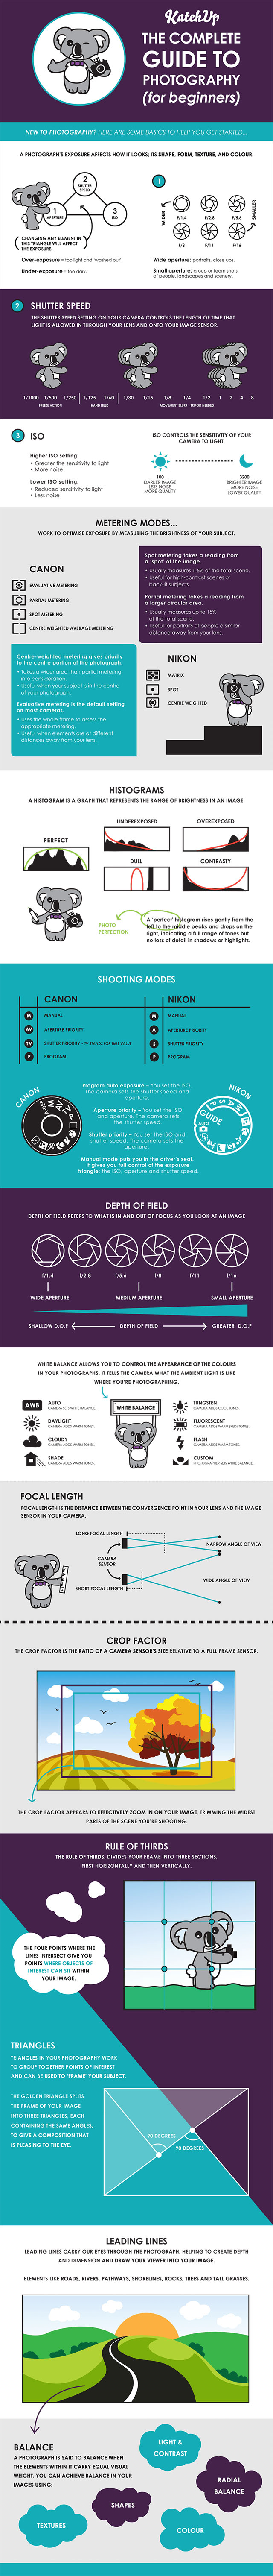 The Complete Guide To Photography - Useful Infographic For Beginners